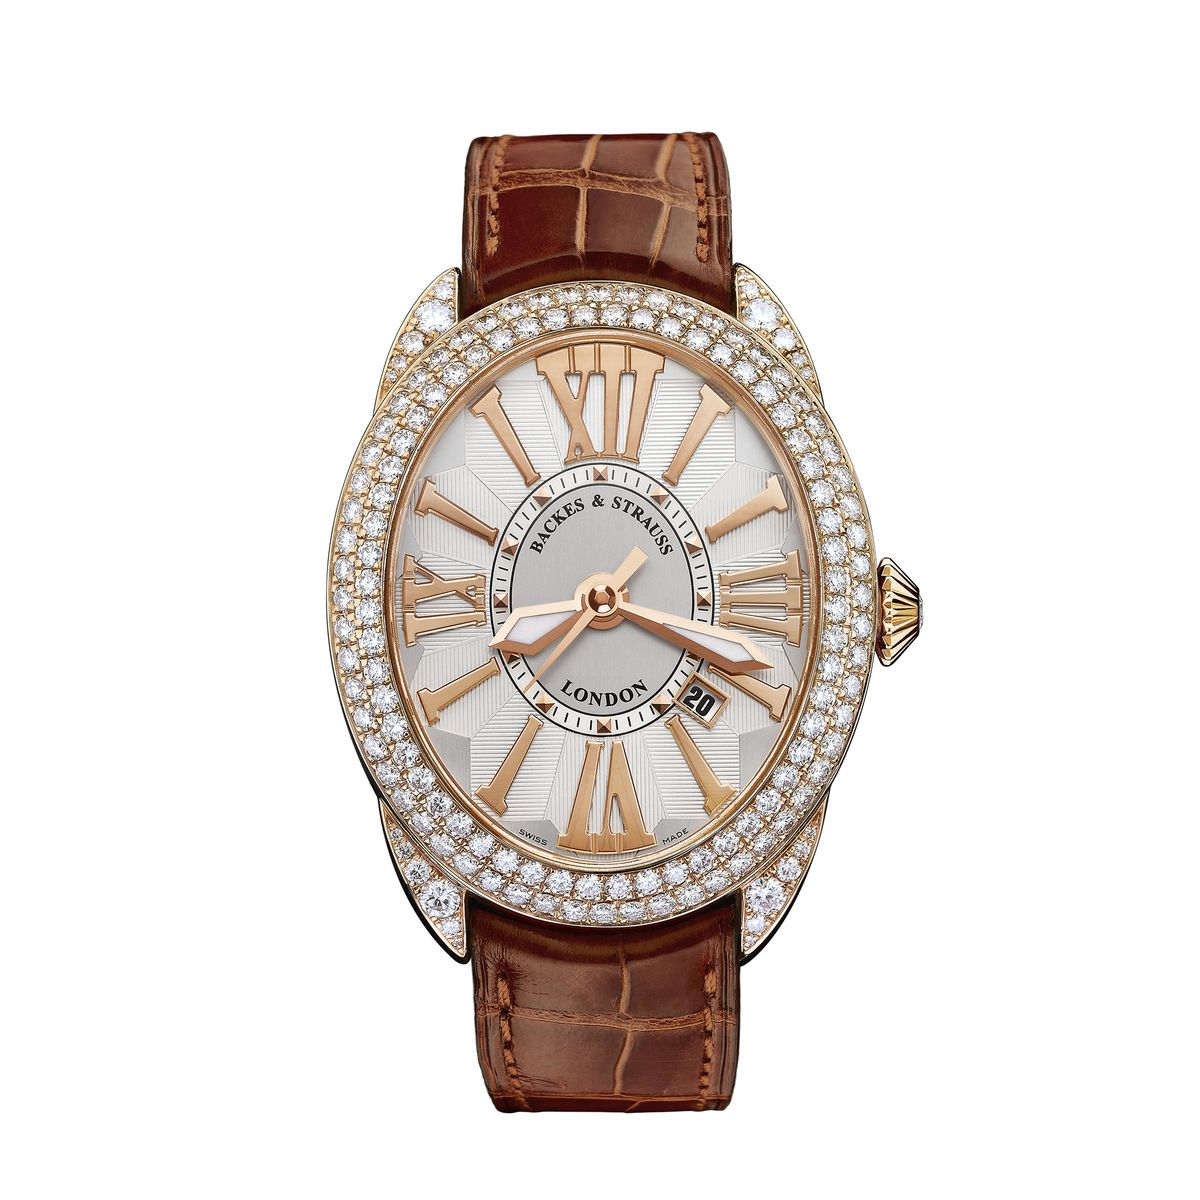 Regent 4452 Luxury Diamond Watch for Men and Women - 44 x 52 mm Rose Gold - Backes & Strauss